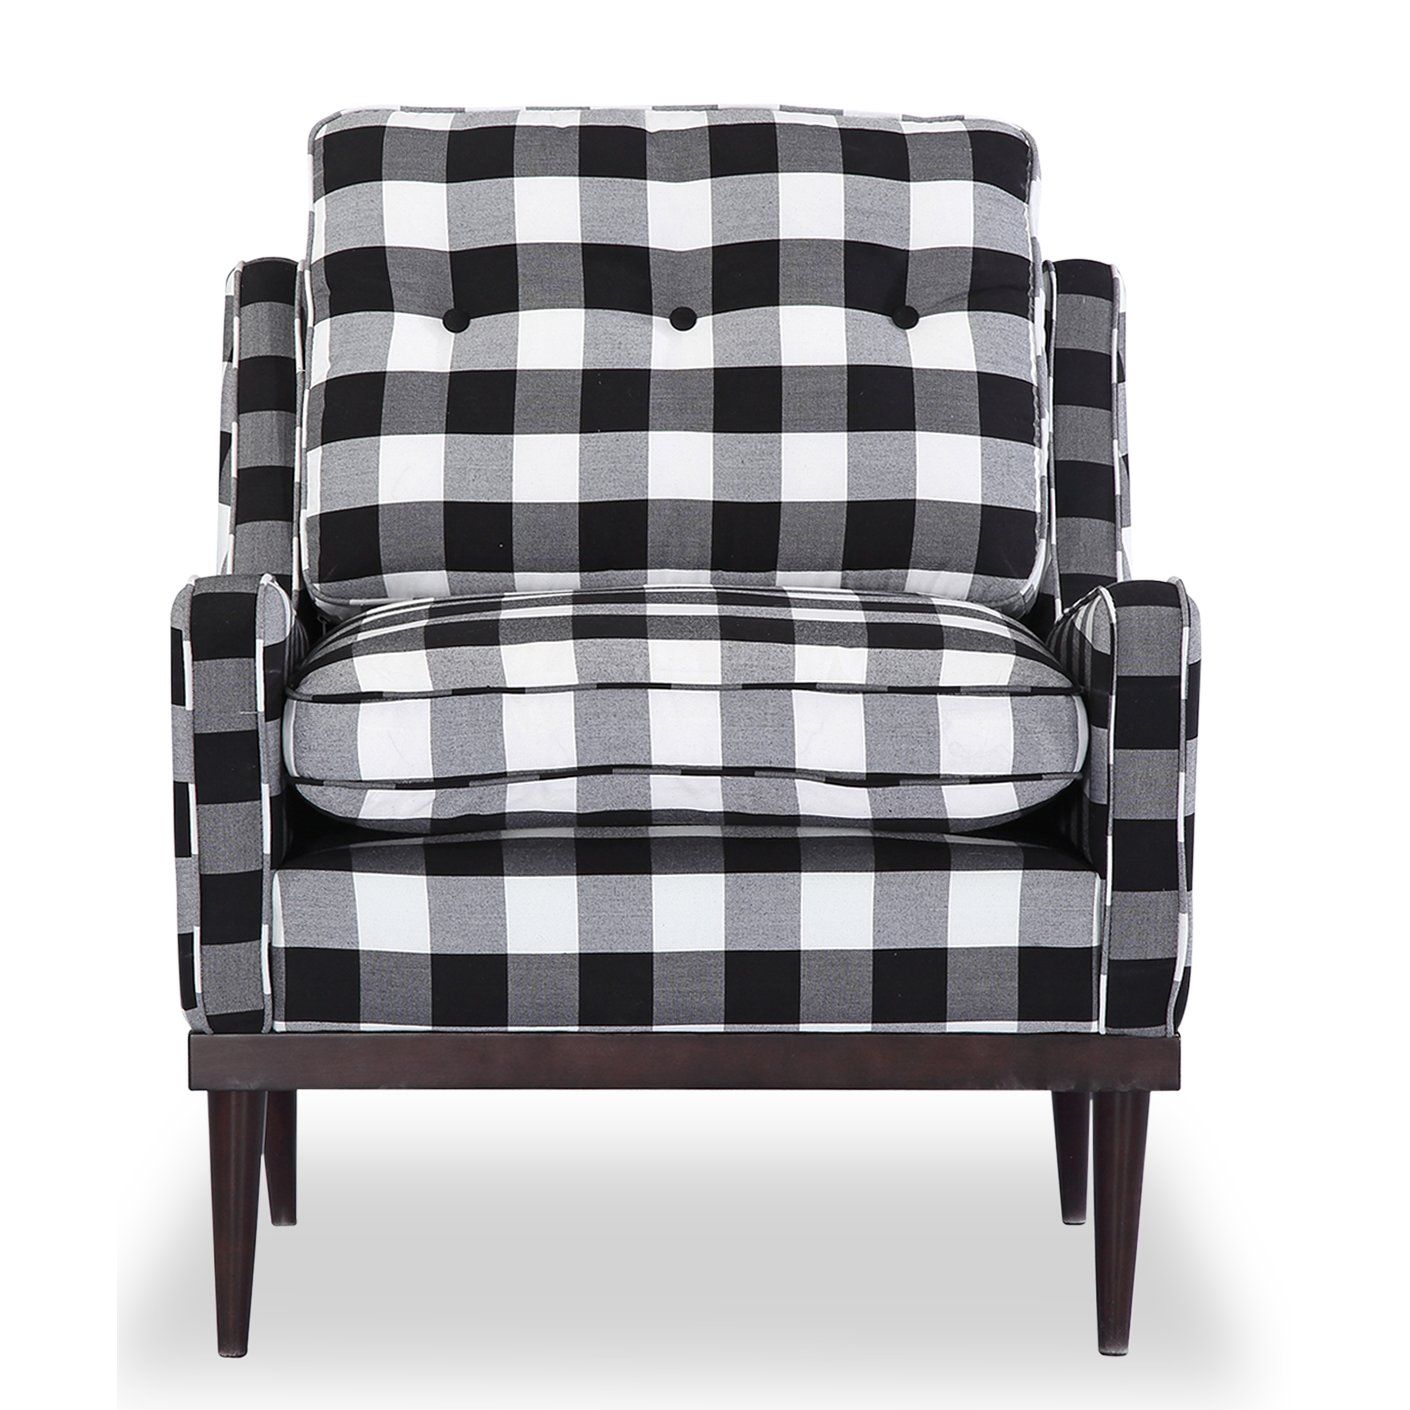 Elektra Midcentury Modern Slipper Chair